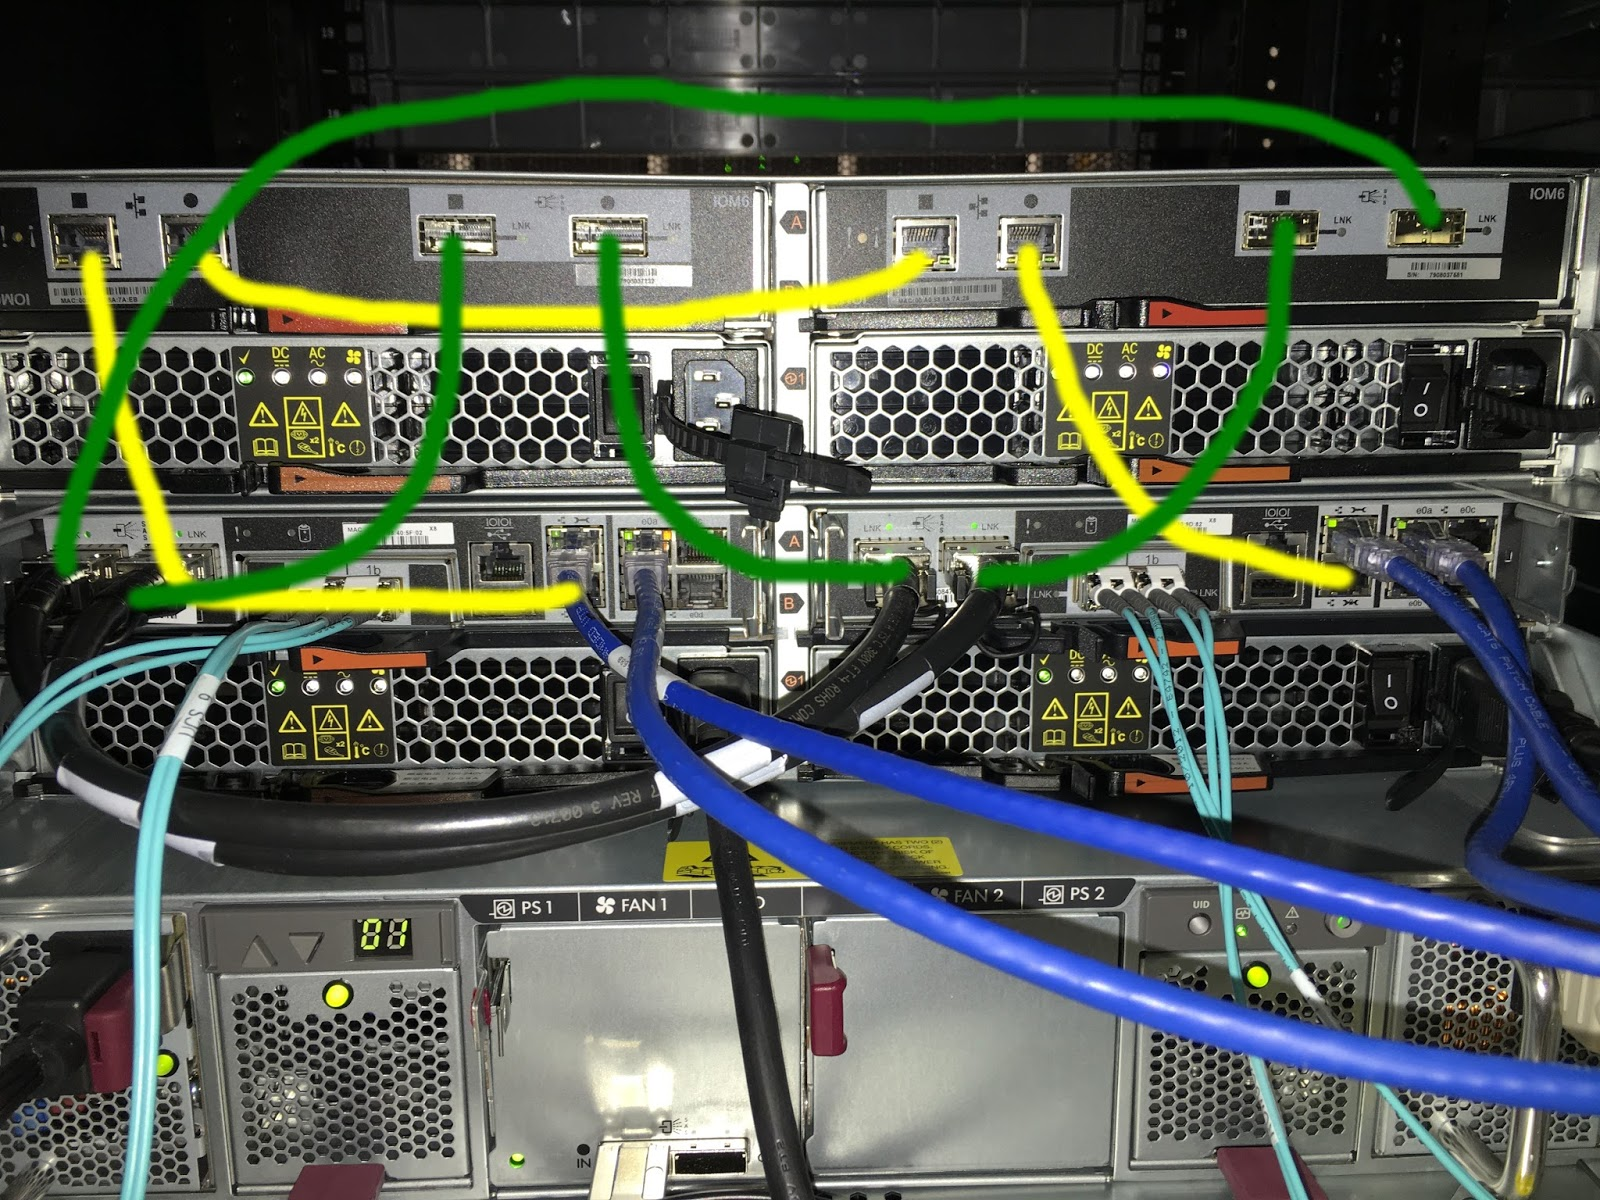 hight resolution of below is the production system the racked external storage above it and the ultimate path for the sas and acp cables worked like a champ